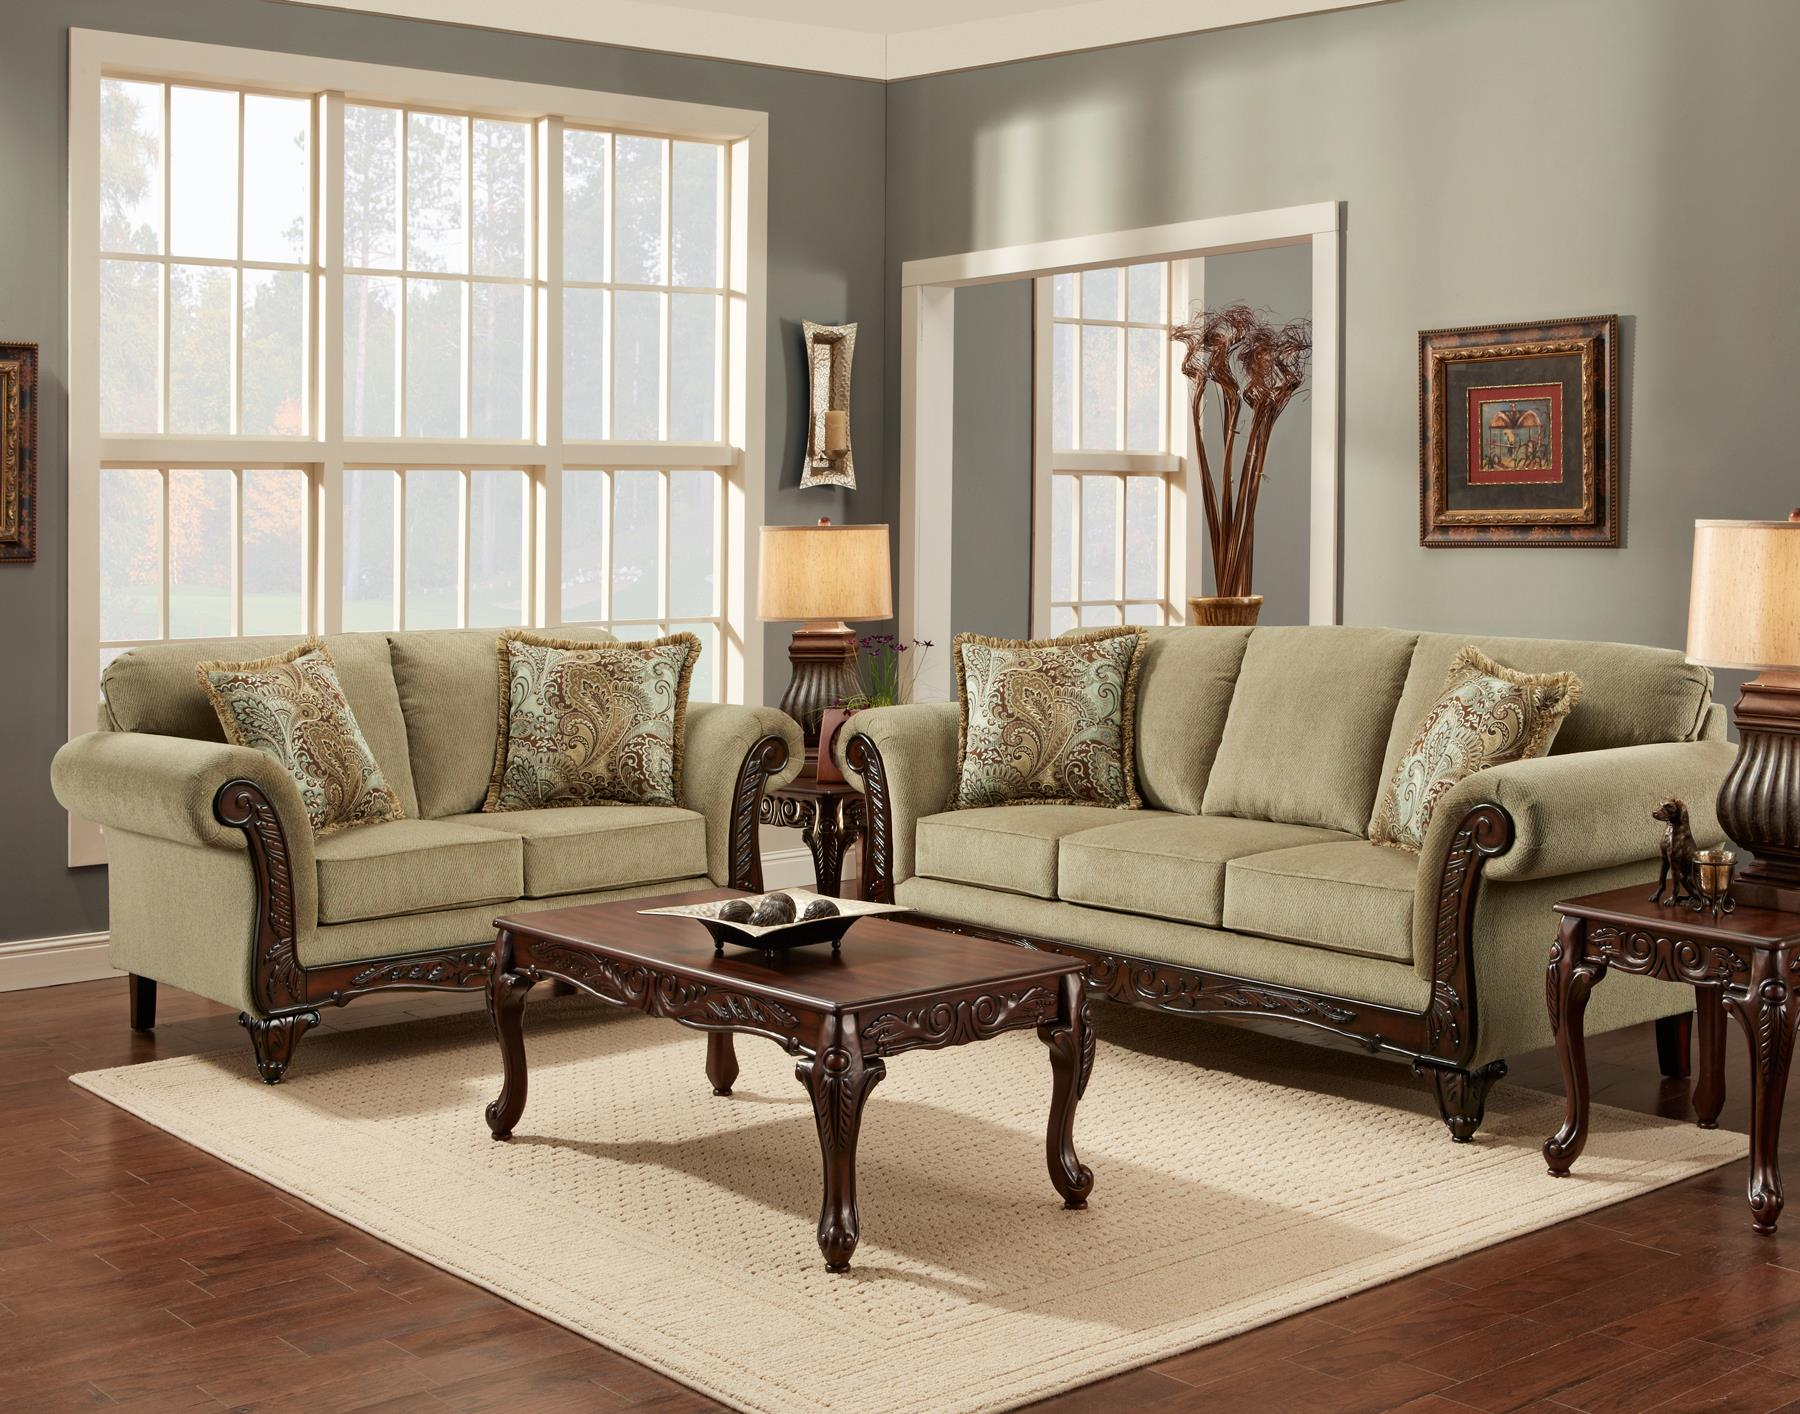 8500 Stationary Living Room Group by Affordable Furniture at Wilcox Furniture